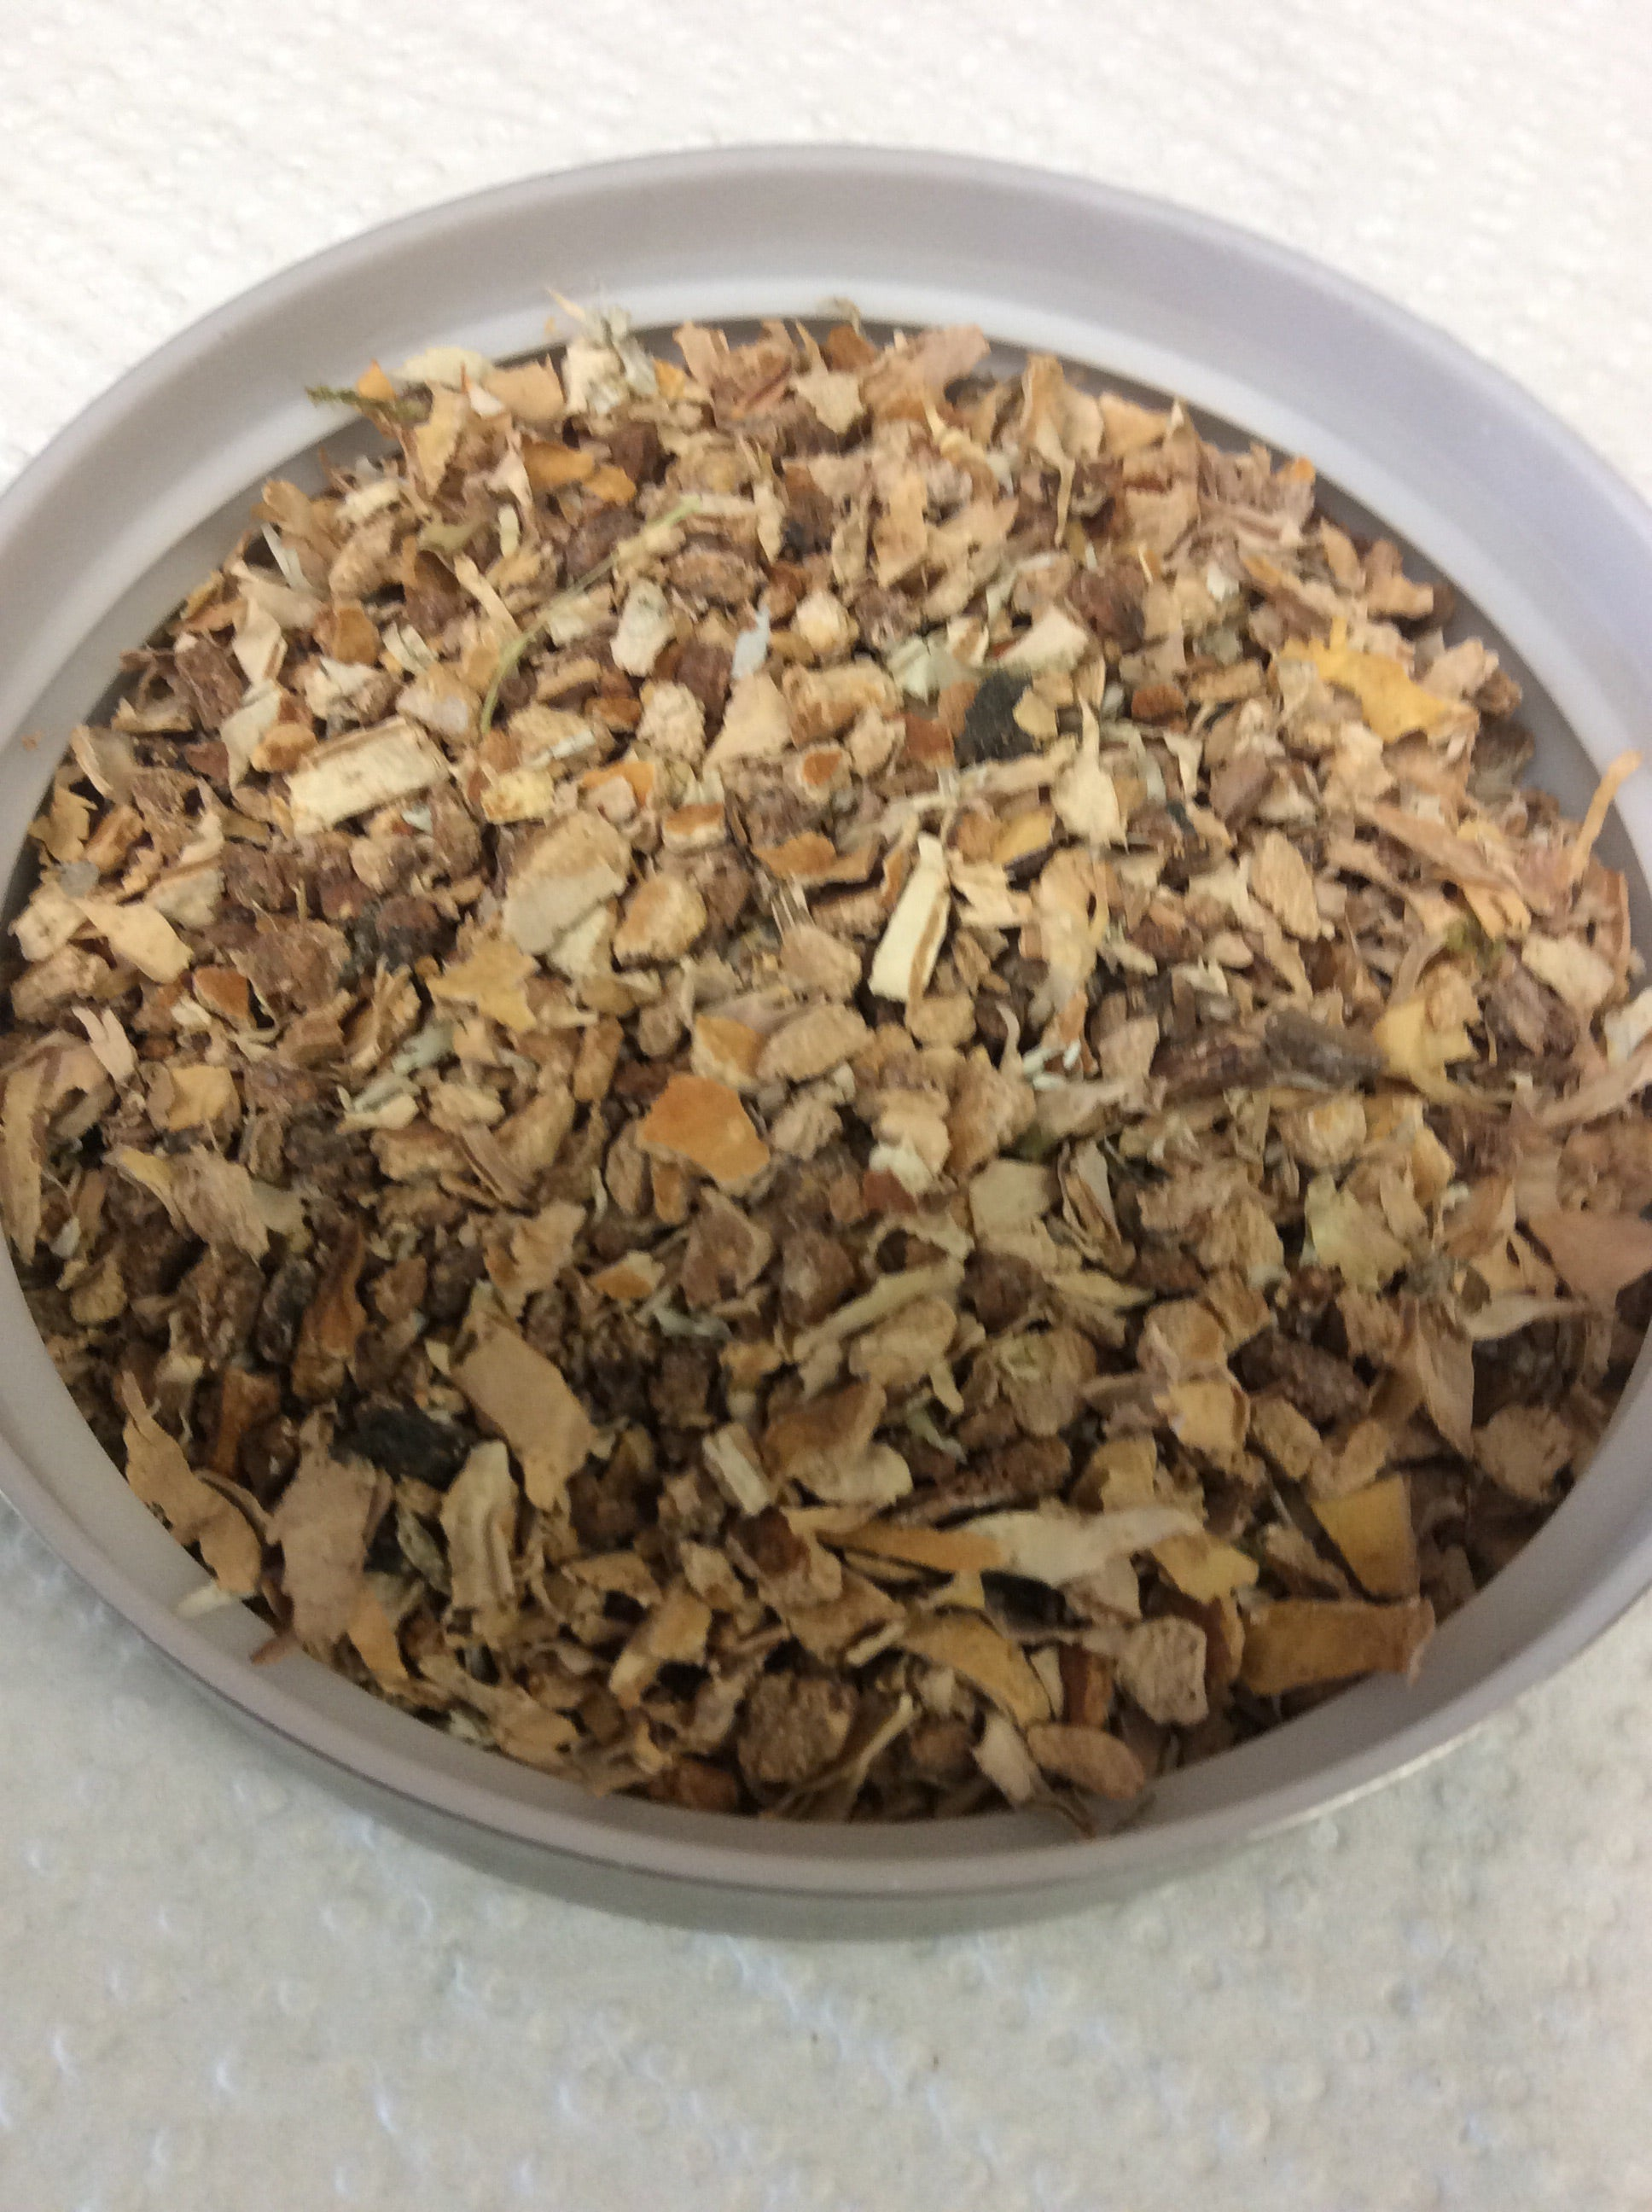 Birch bark loose herb, 1 oz